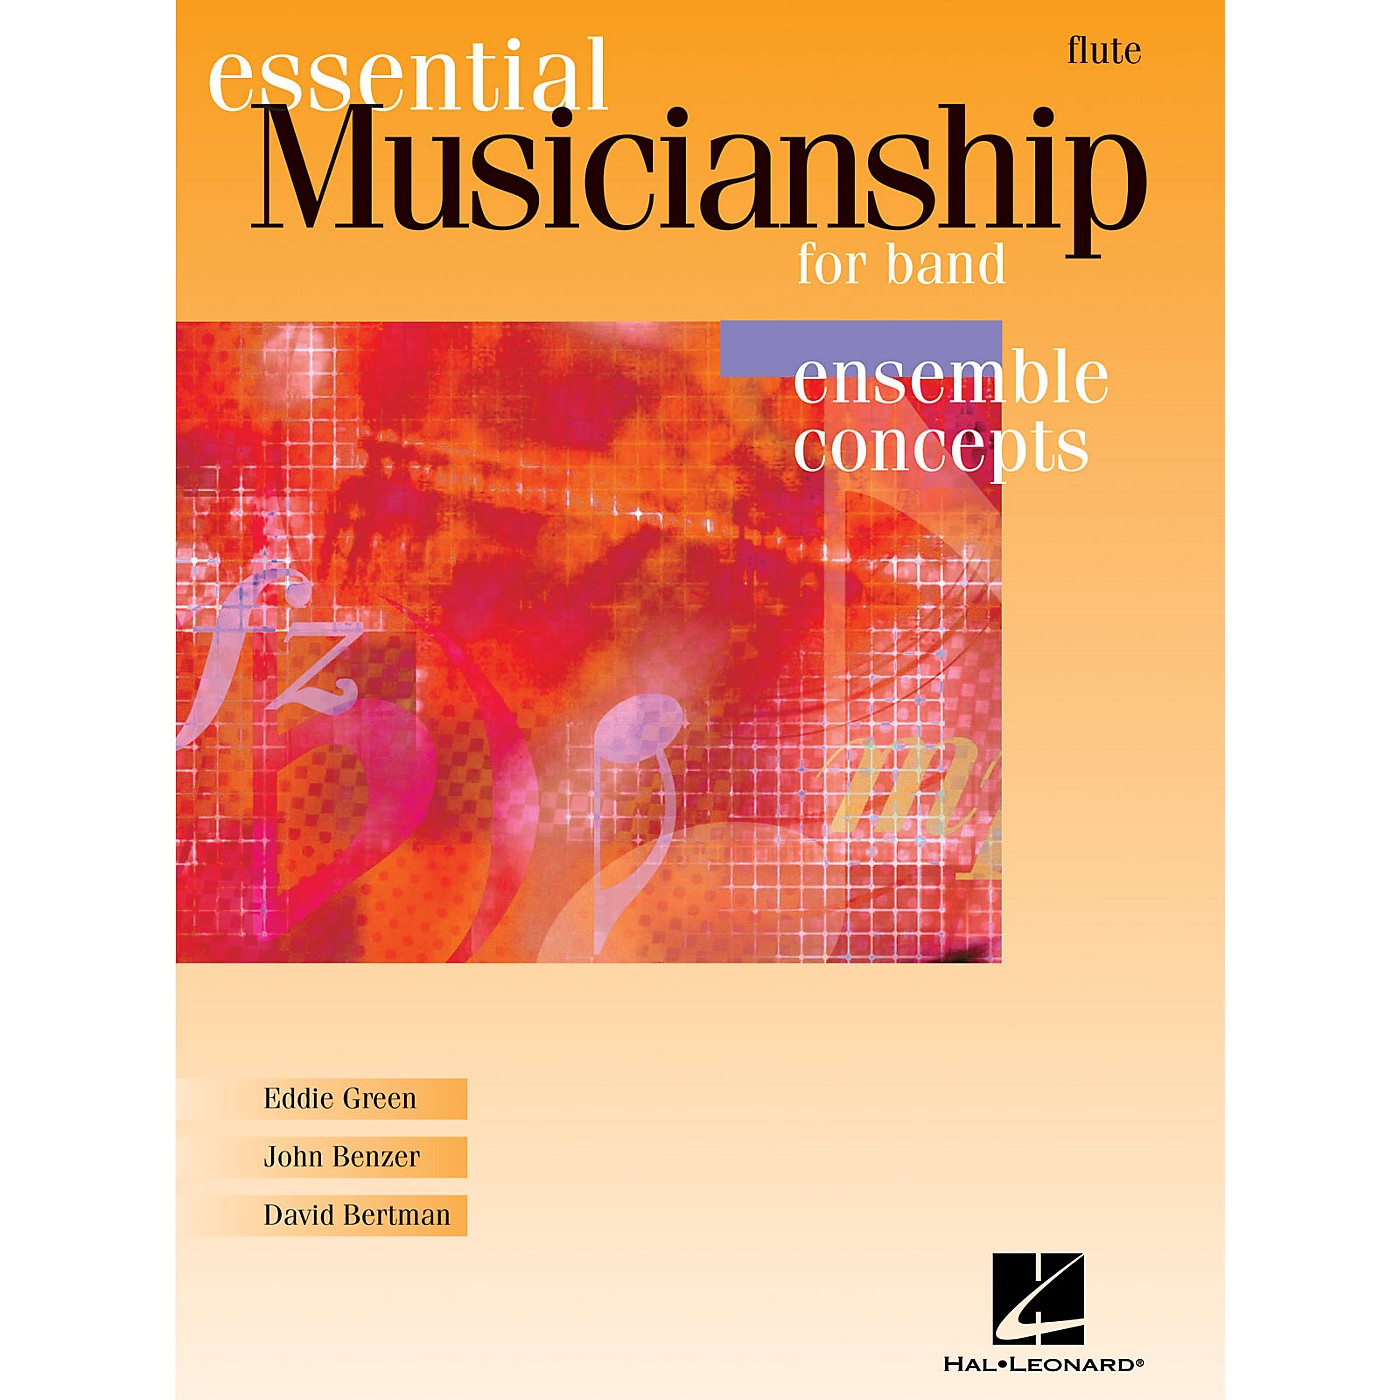 Hal Leonard Ensemble Concepts for Band - Value Pak (40 Part Books plus Conductor Score) Concert Band thumbnail